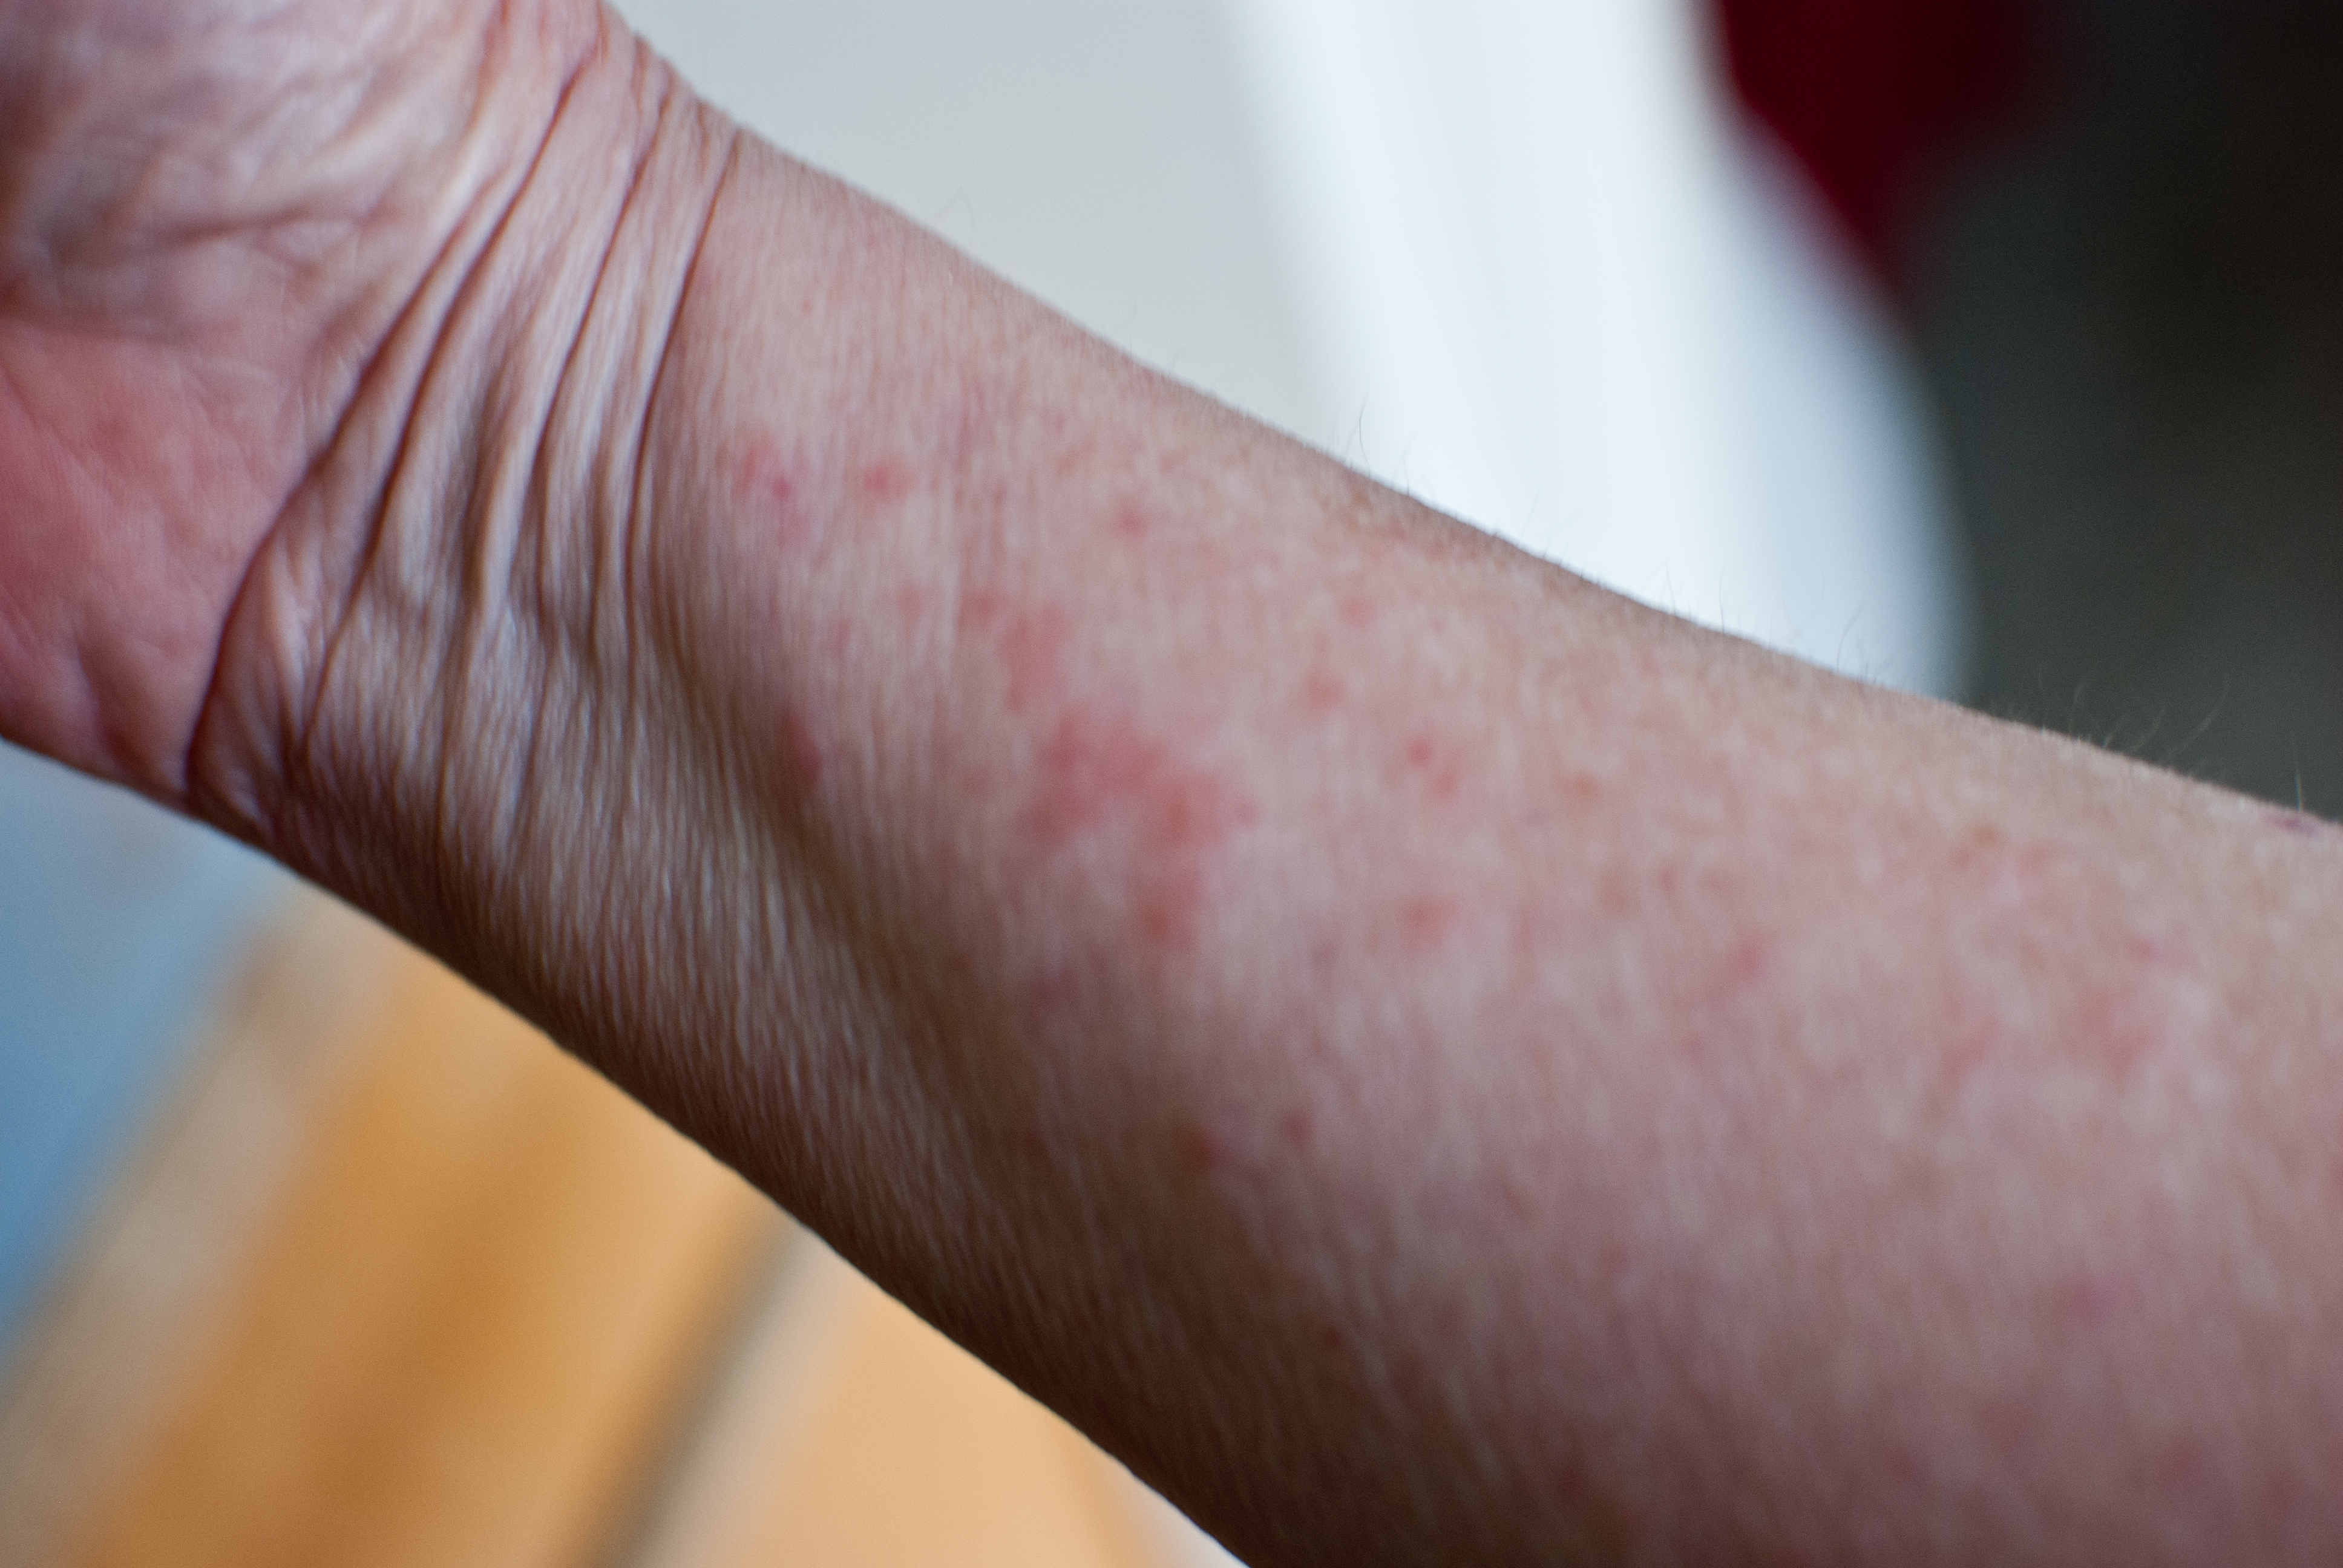 Poison ivy, swollen hands and arms? | Yahoo Answers